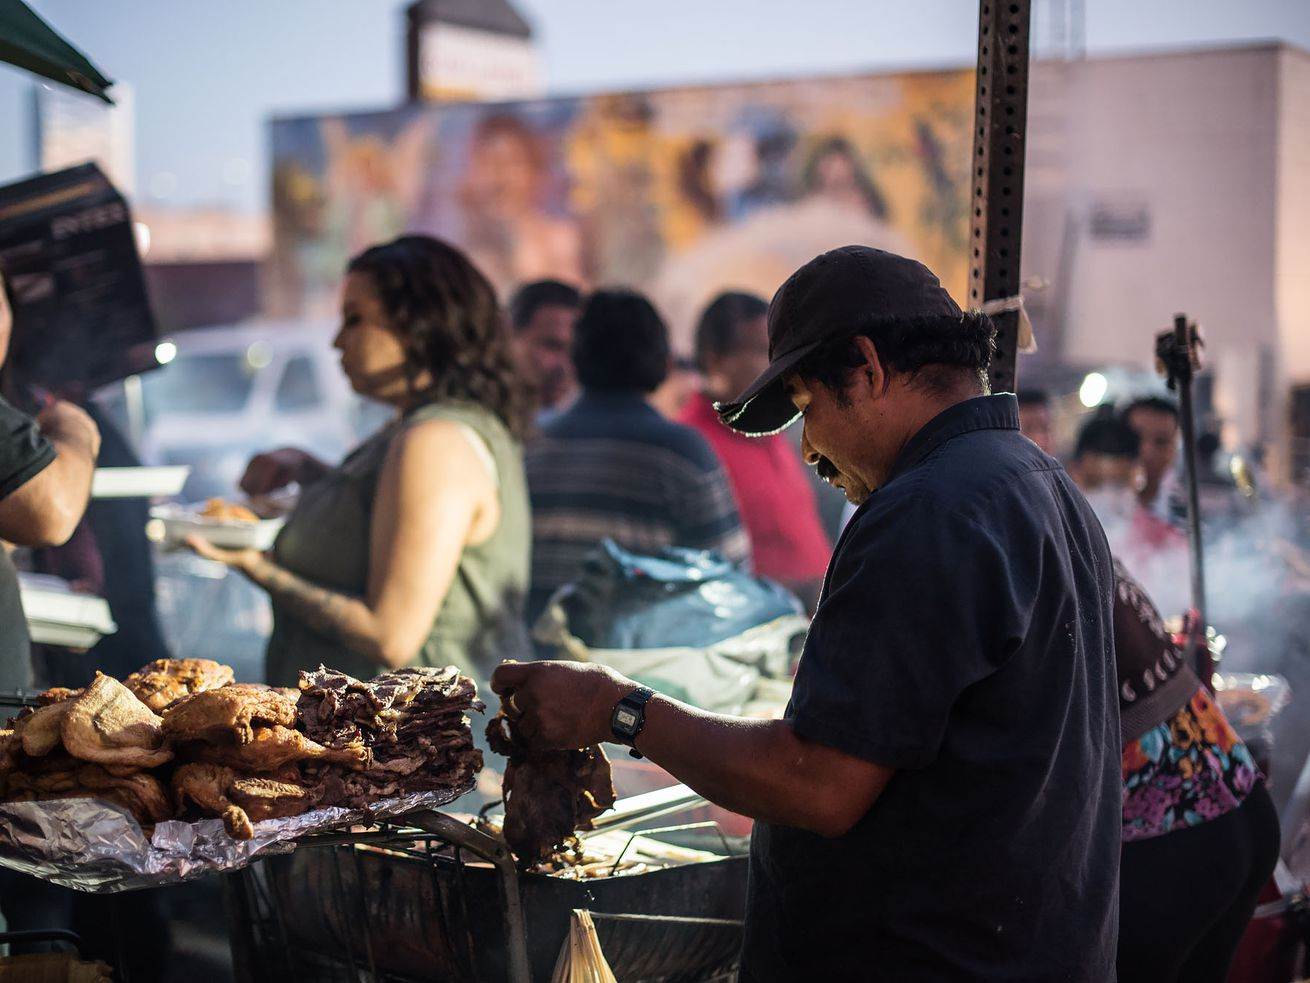 Street vendor in 6th and Bonnie Brae, Los Angeles